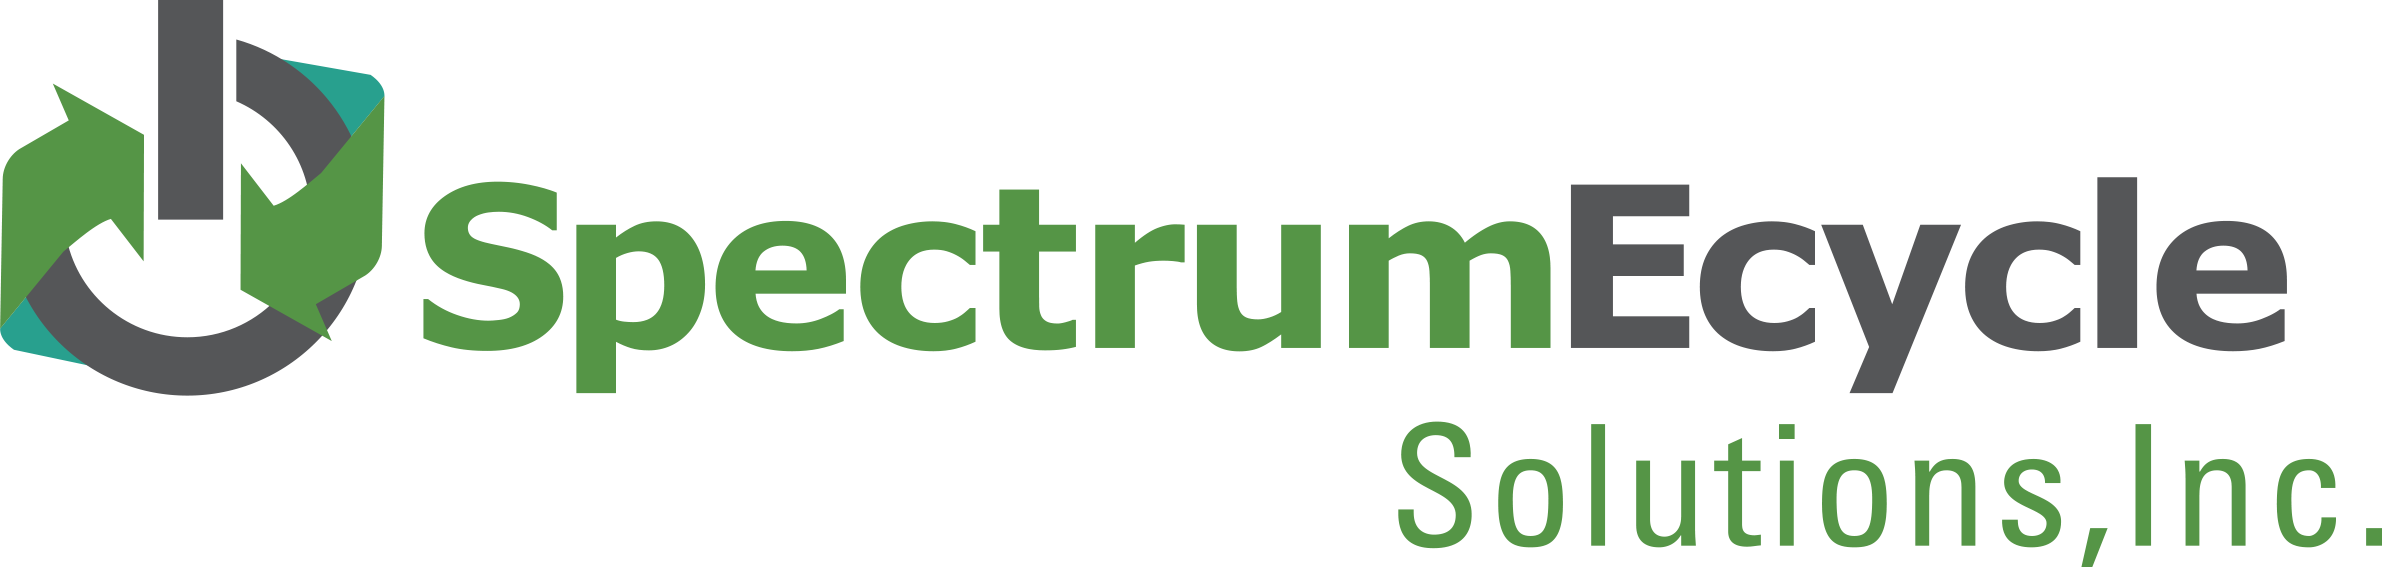 Spectrum Ecycle